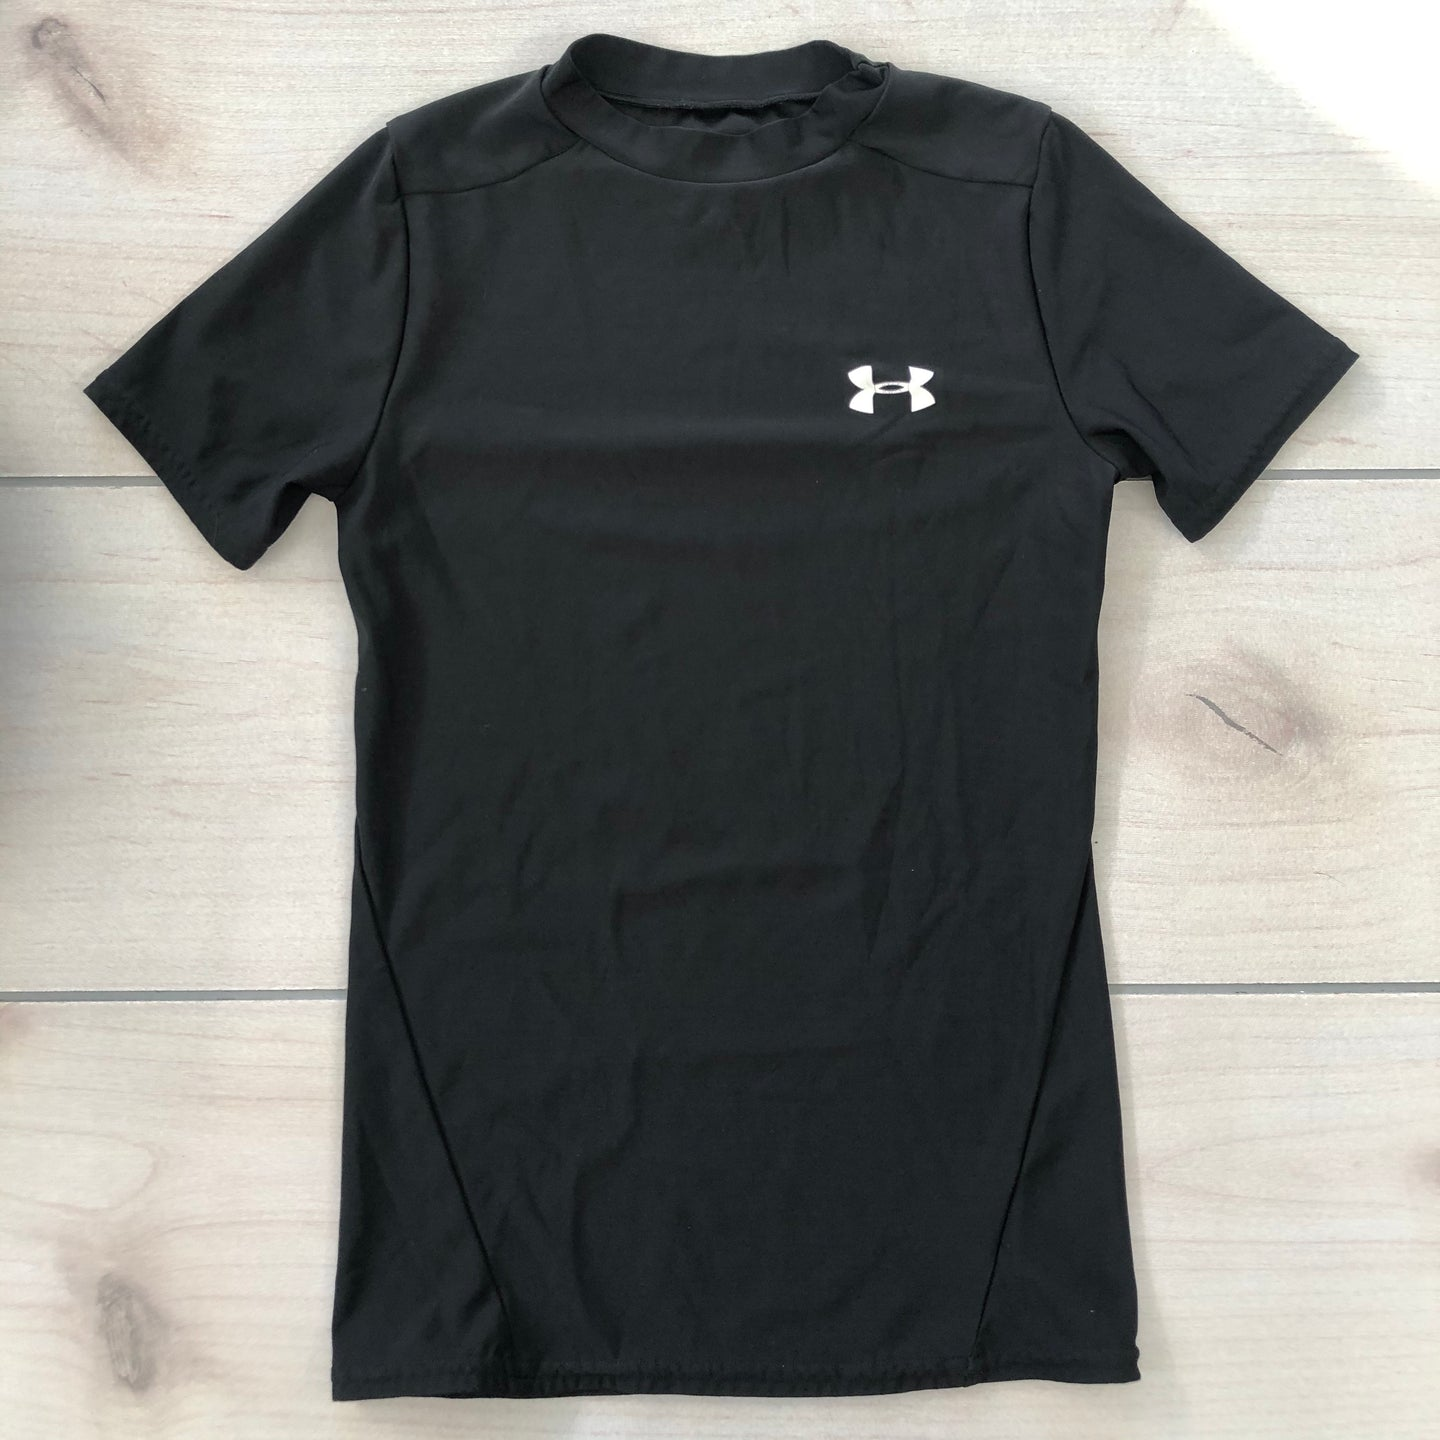 Under Armour Performance Black T-Shirt YMD